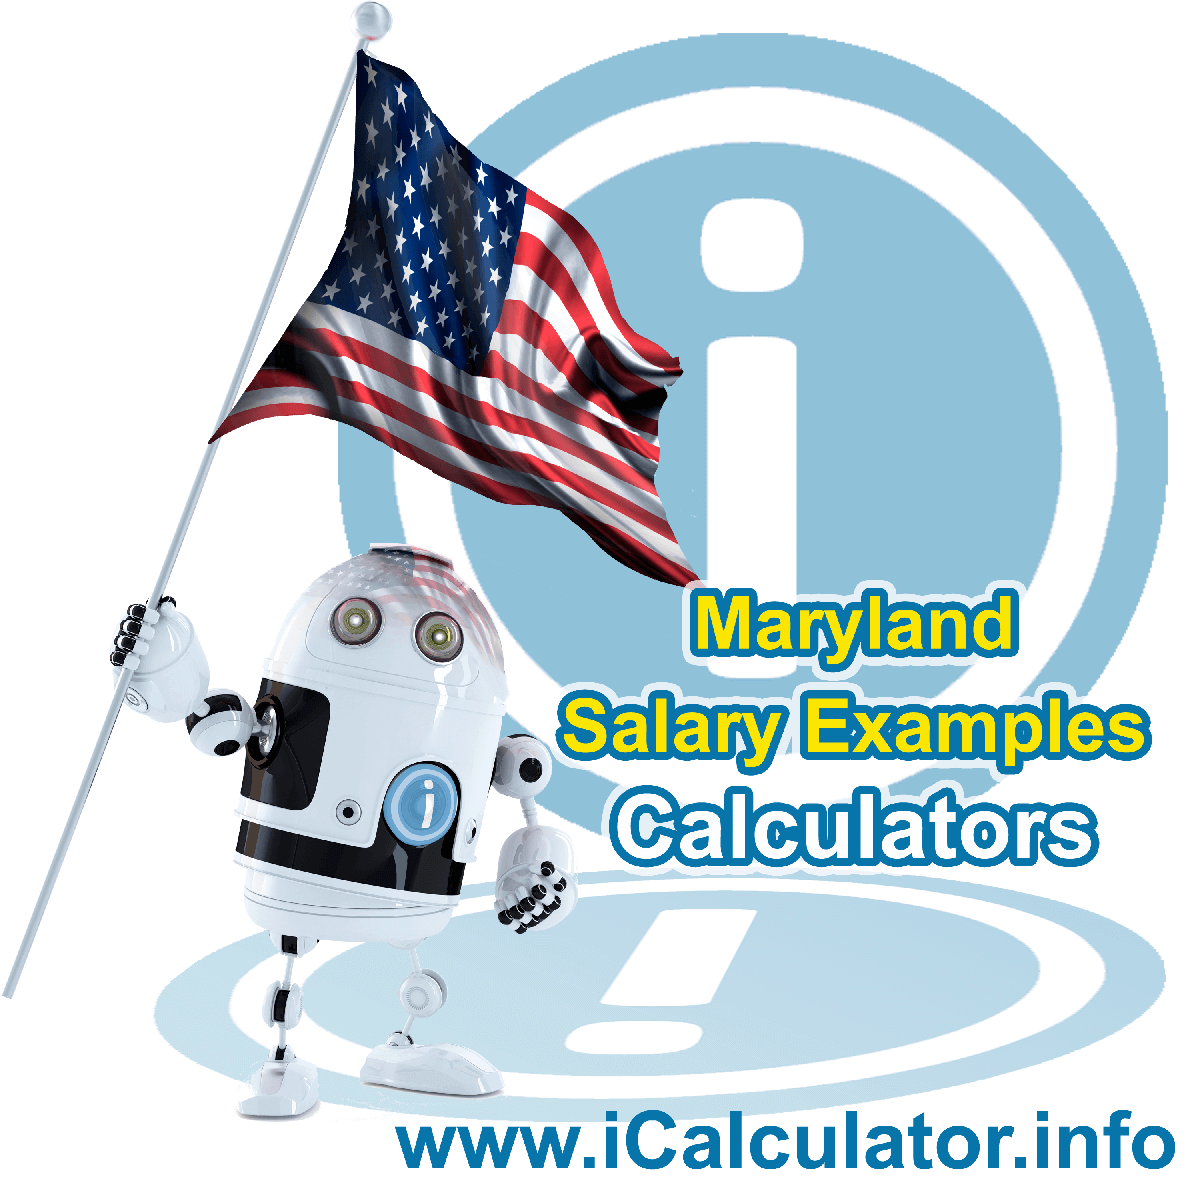 Maryland Salary Example for $60.00 in 2020 | iCalculator | $60.00 salary example for employee and employer paying Maryland State tincome taxes. Detailed salary after tax calculation including Maryland State Tax, Federal State Tax, Medicare Deductions, Social Security, Capital Gains and other income tax and salary deductions complete with supporting Maryland state tax tables